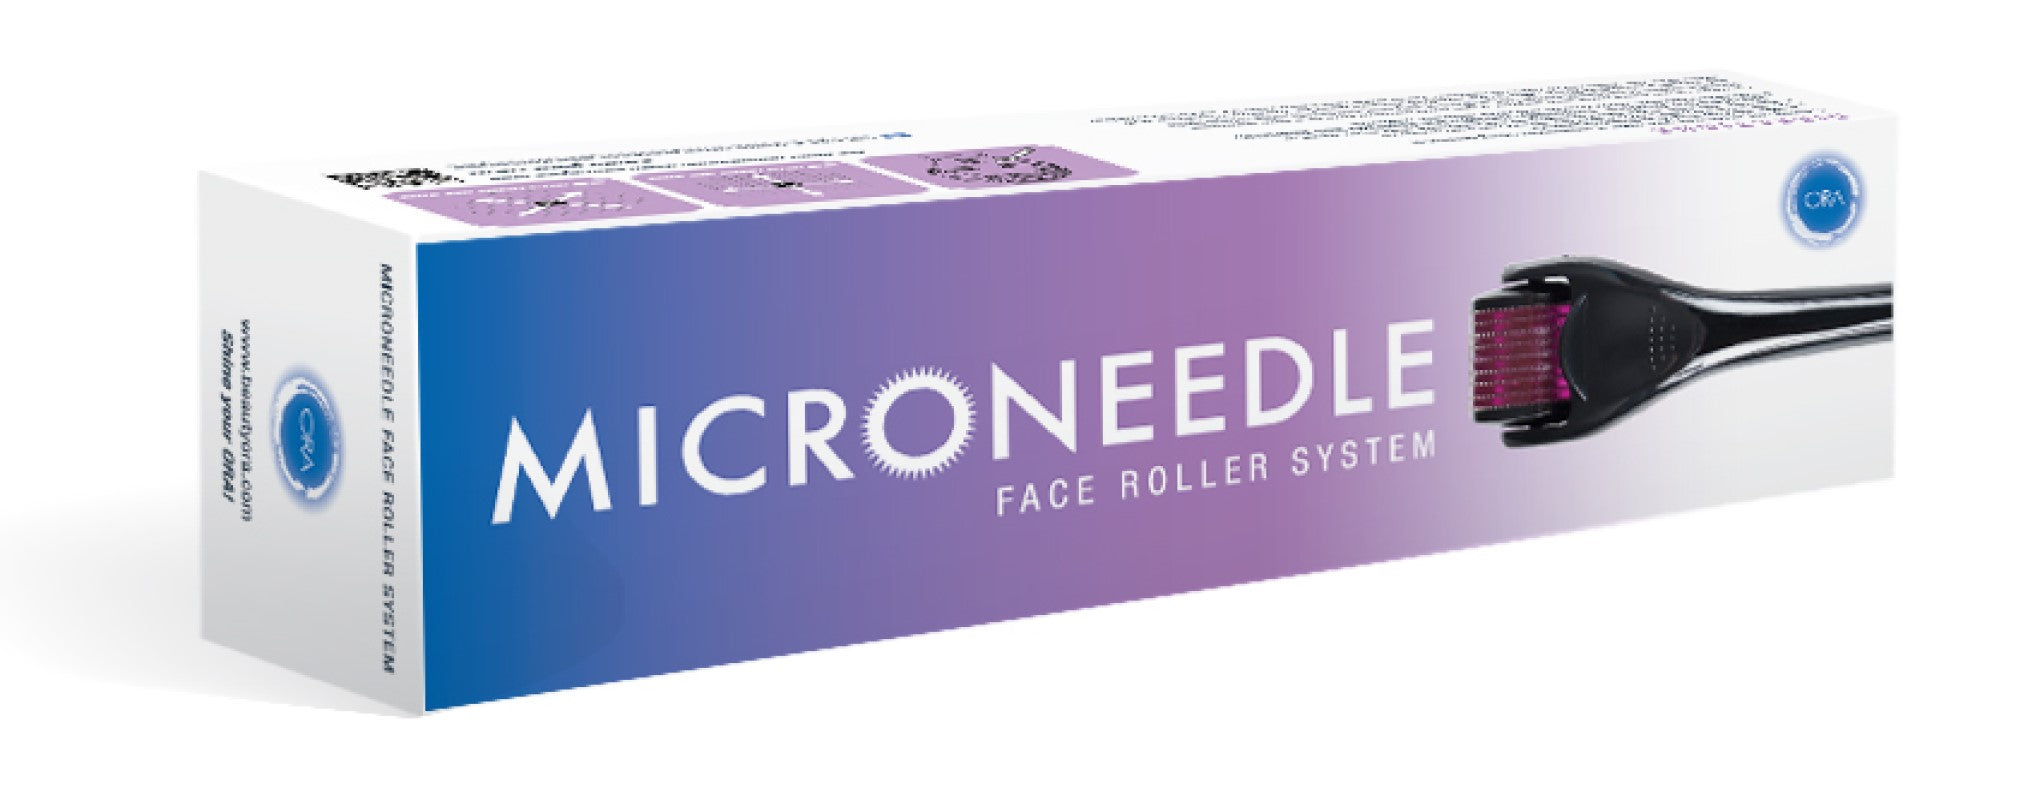 ORA Facial Microneedle Roller System (Anti-Wrinkles, Stretch Marks, Scars & Cellulite)